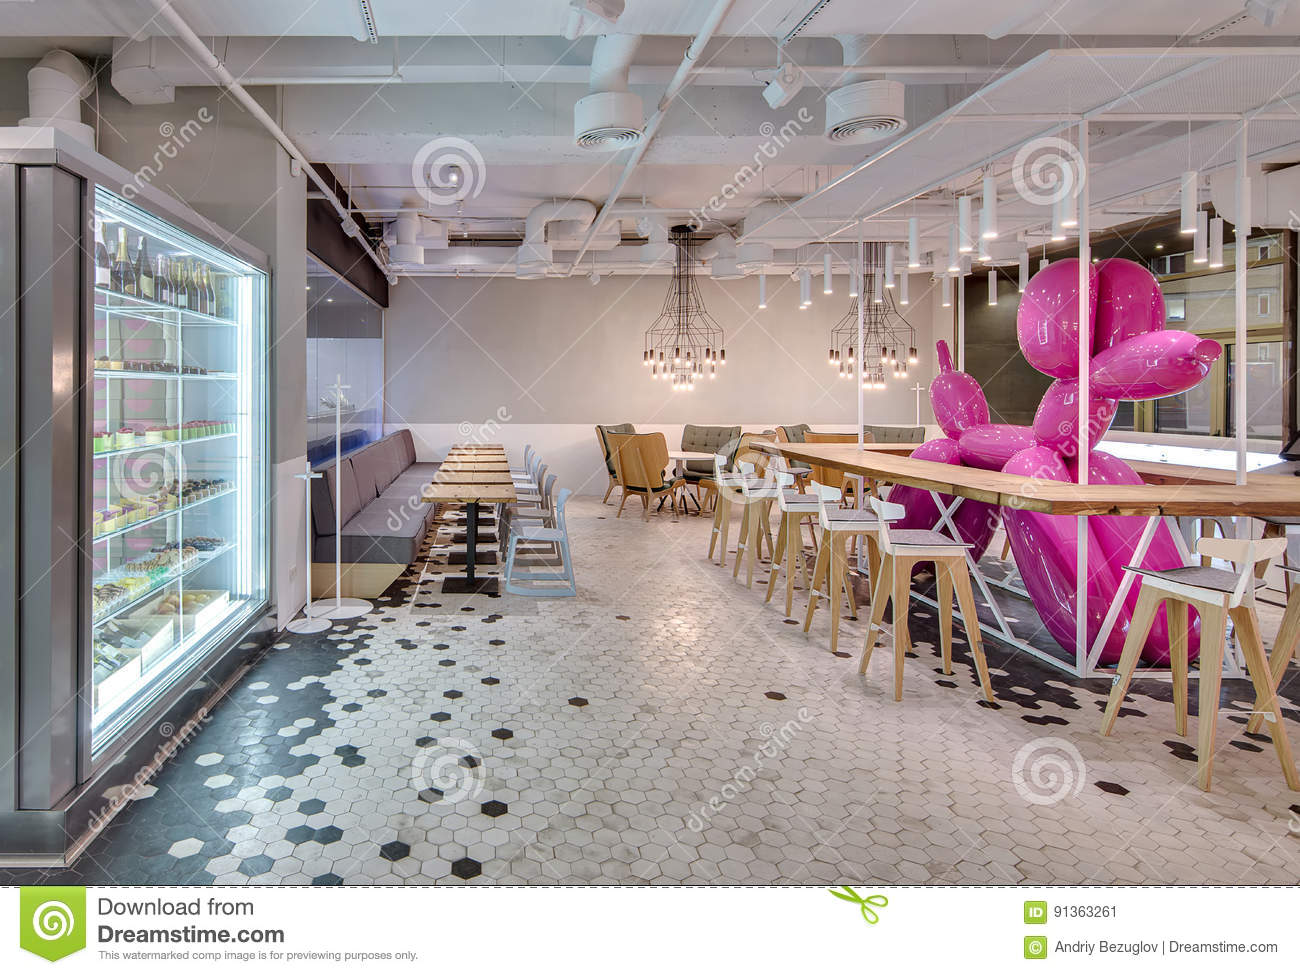 cafe in loft style stock photo - image: 91363261